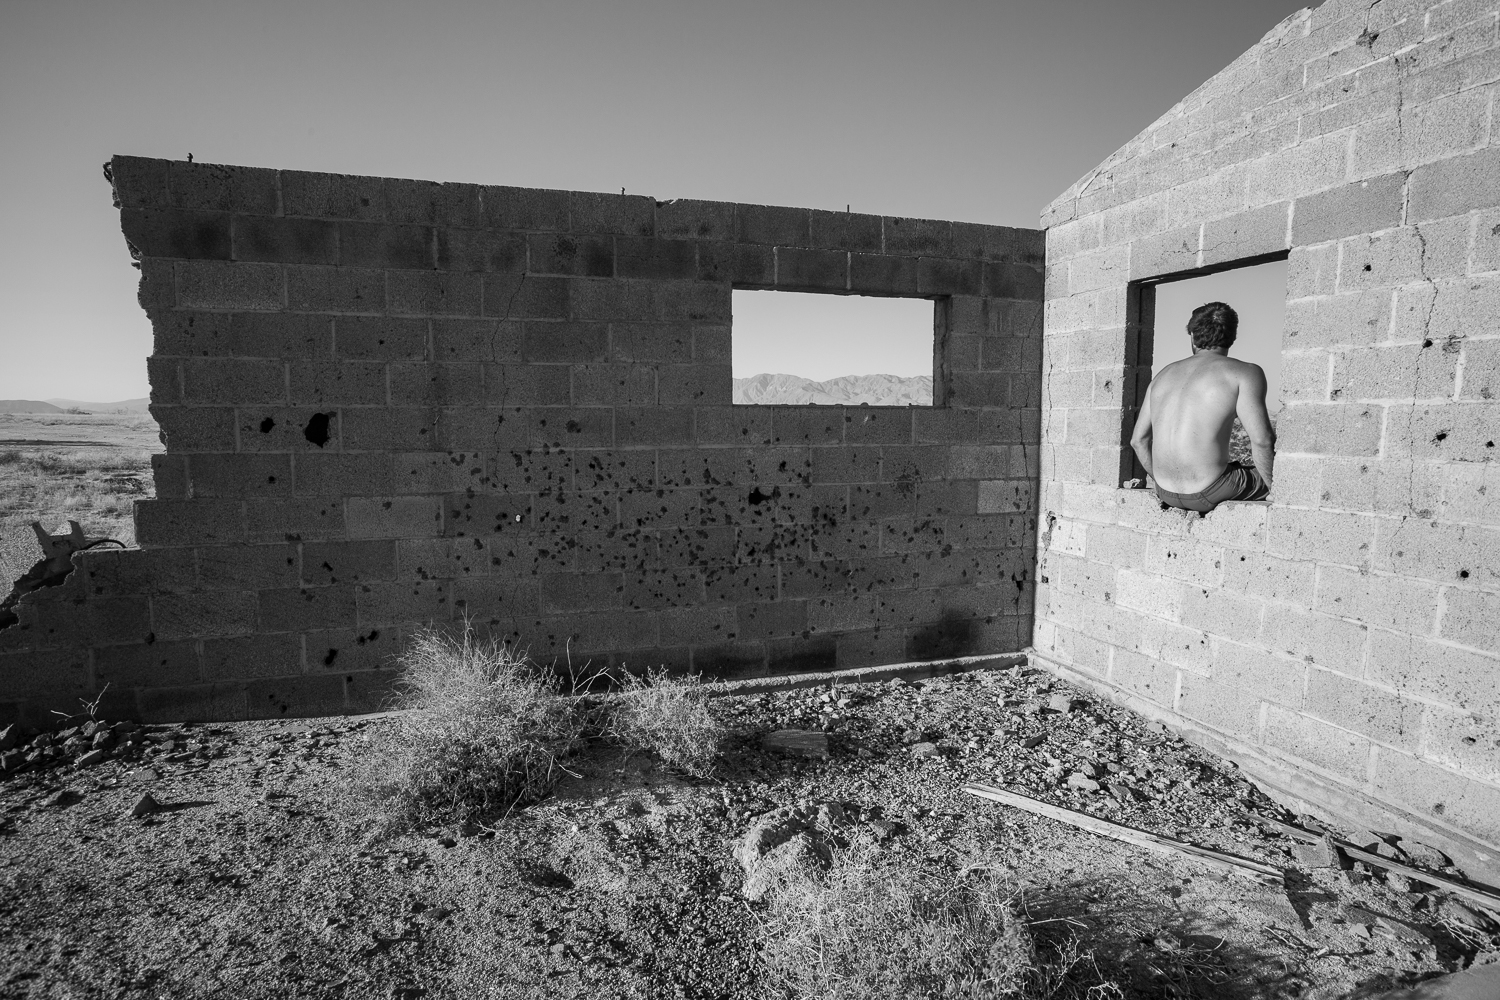 Sitting in abandoned structure while traveling through the Anza Borrego desert in California